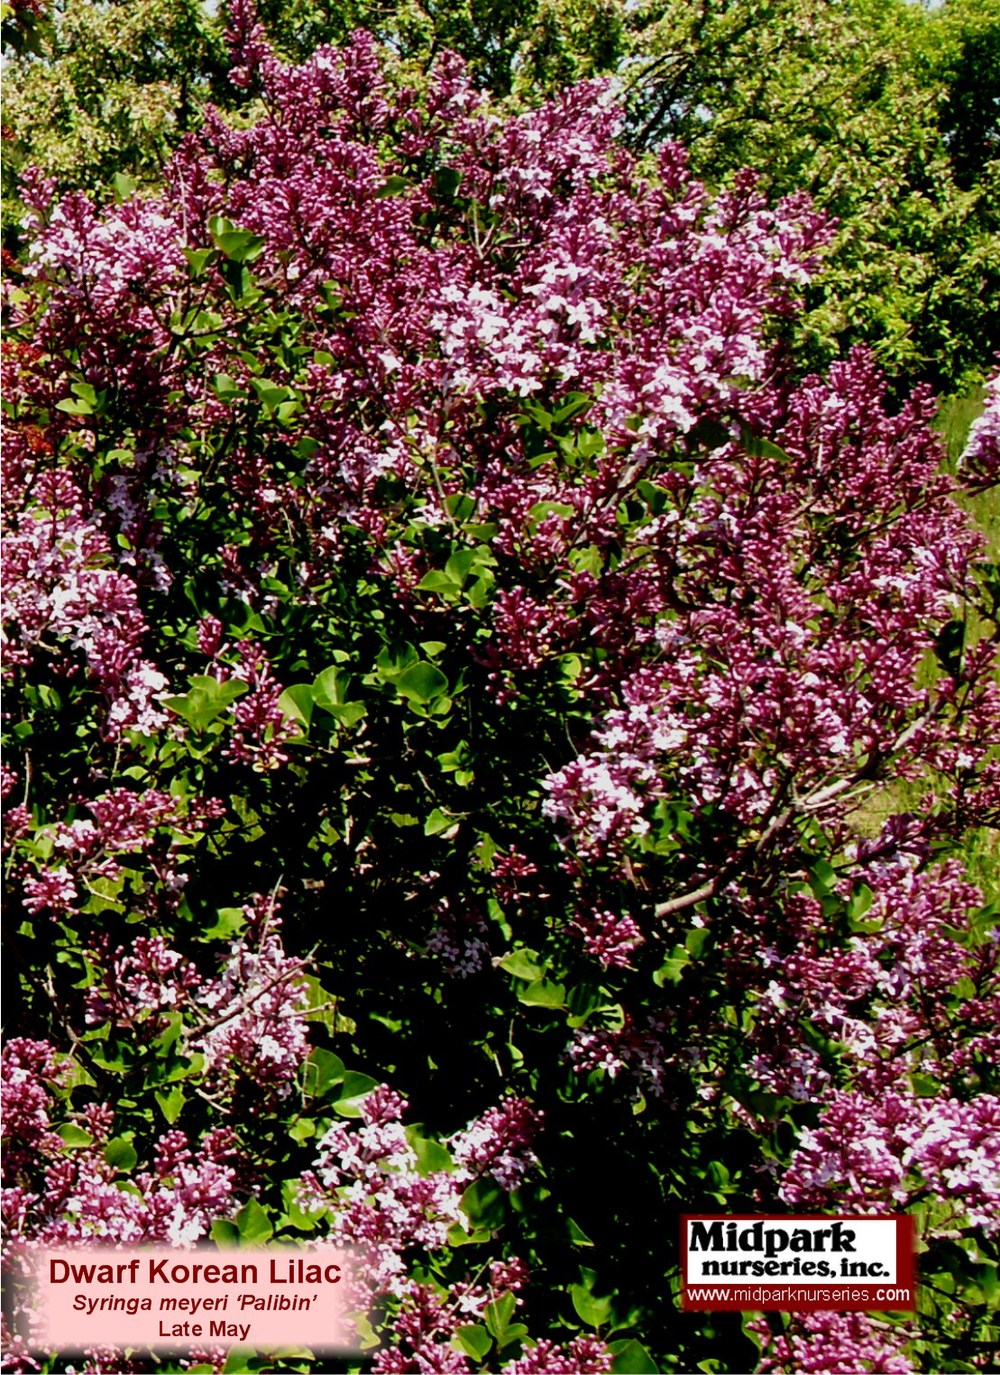 DwarfKoreanLilac_08_0601_close_8x11.jpg